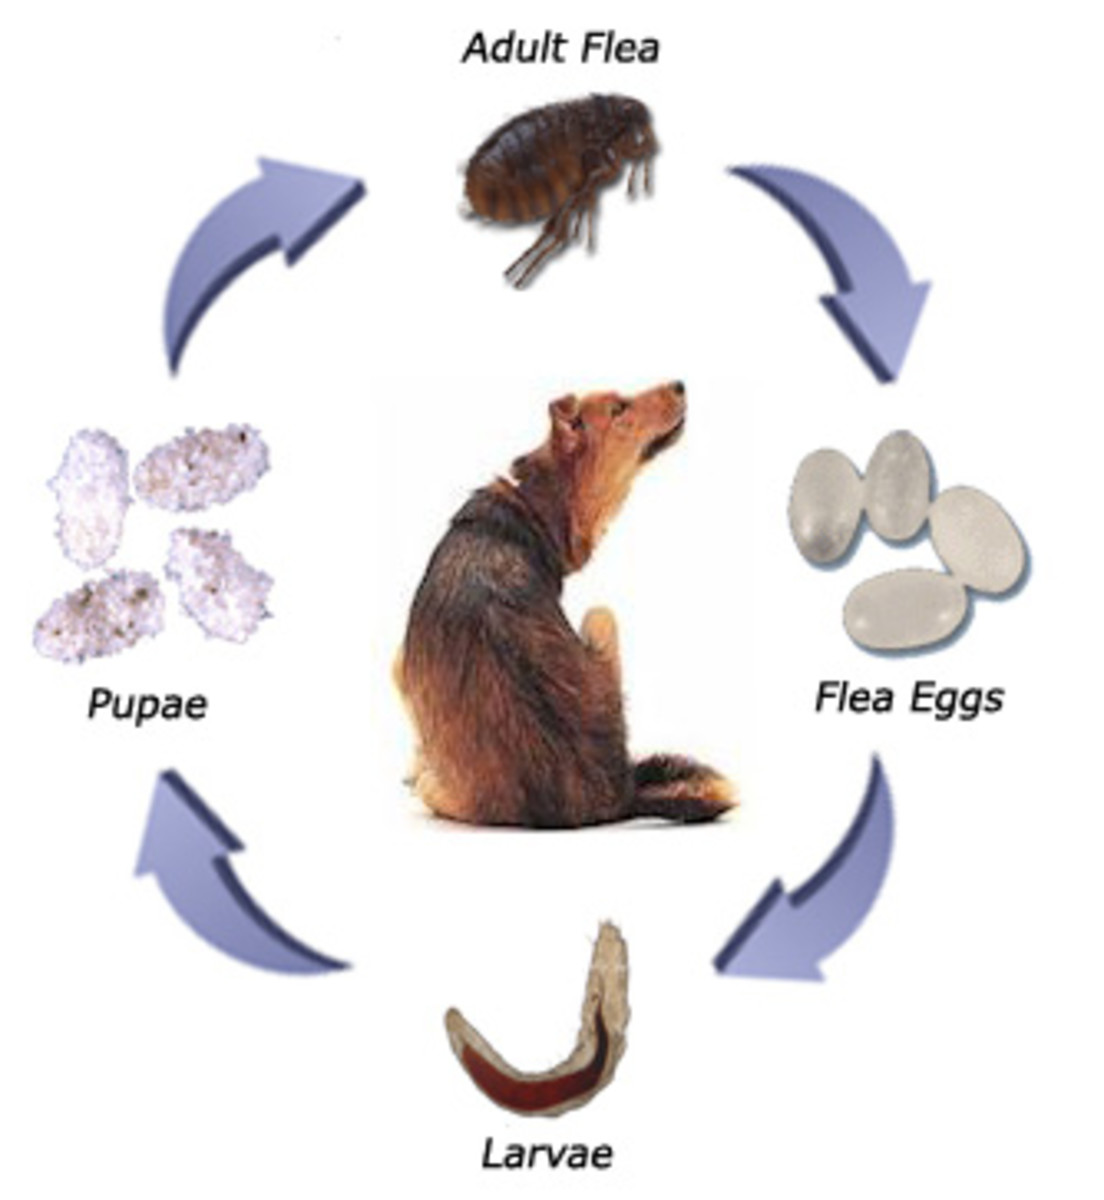 Life Cycle of Dog Fleas